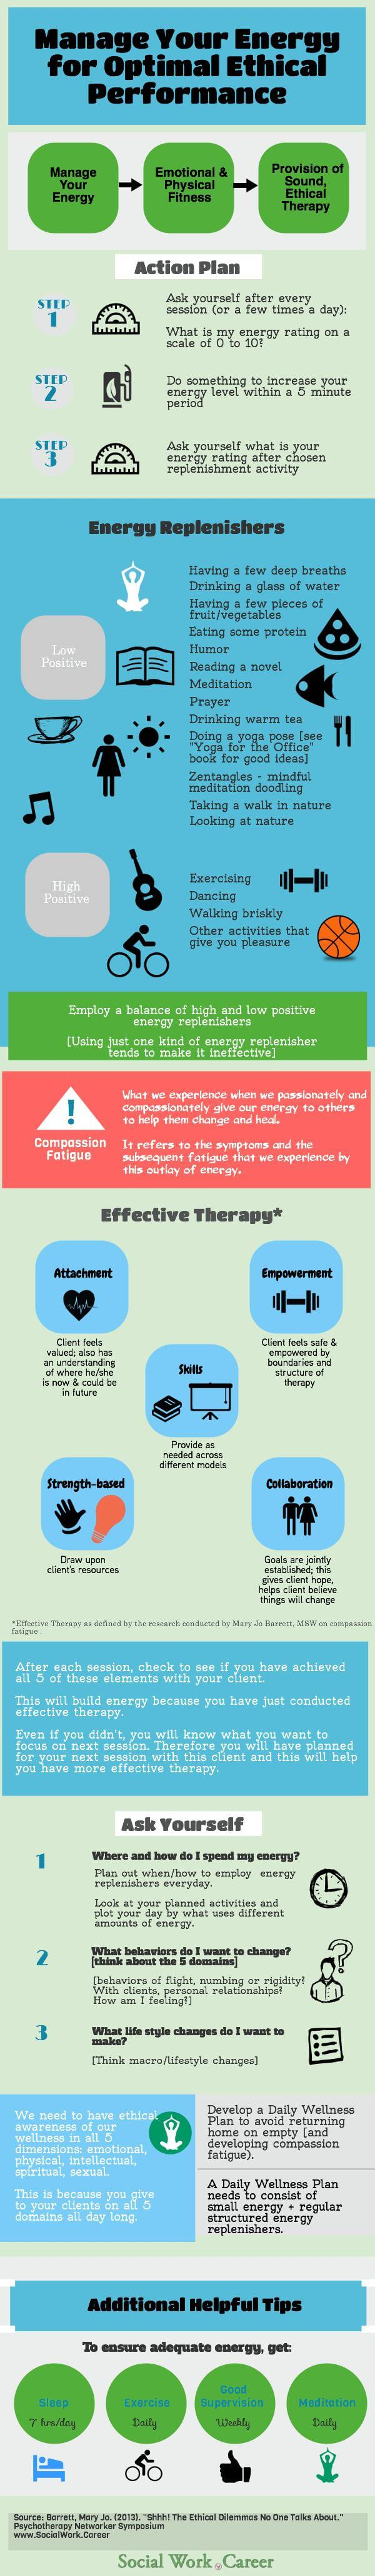 Re energize for Ethical Therapy